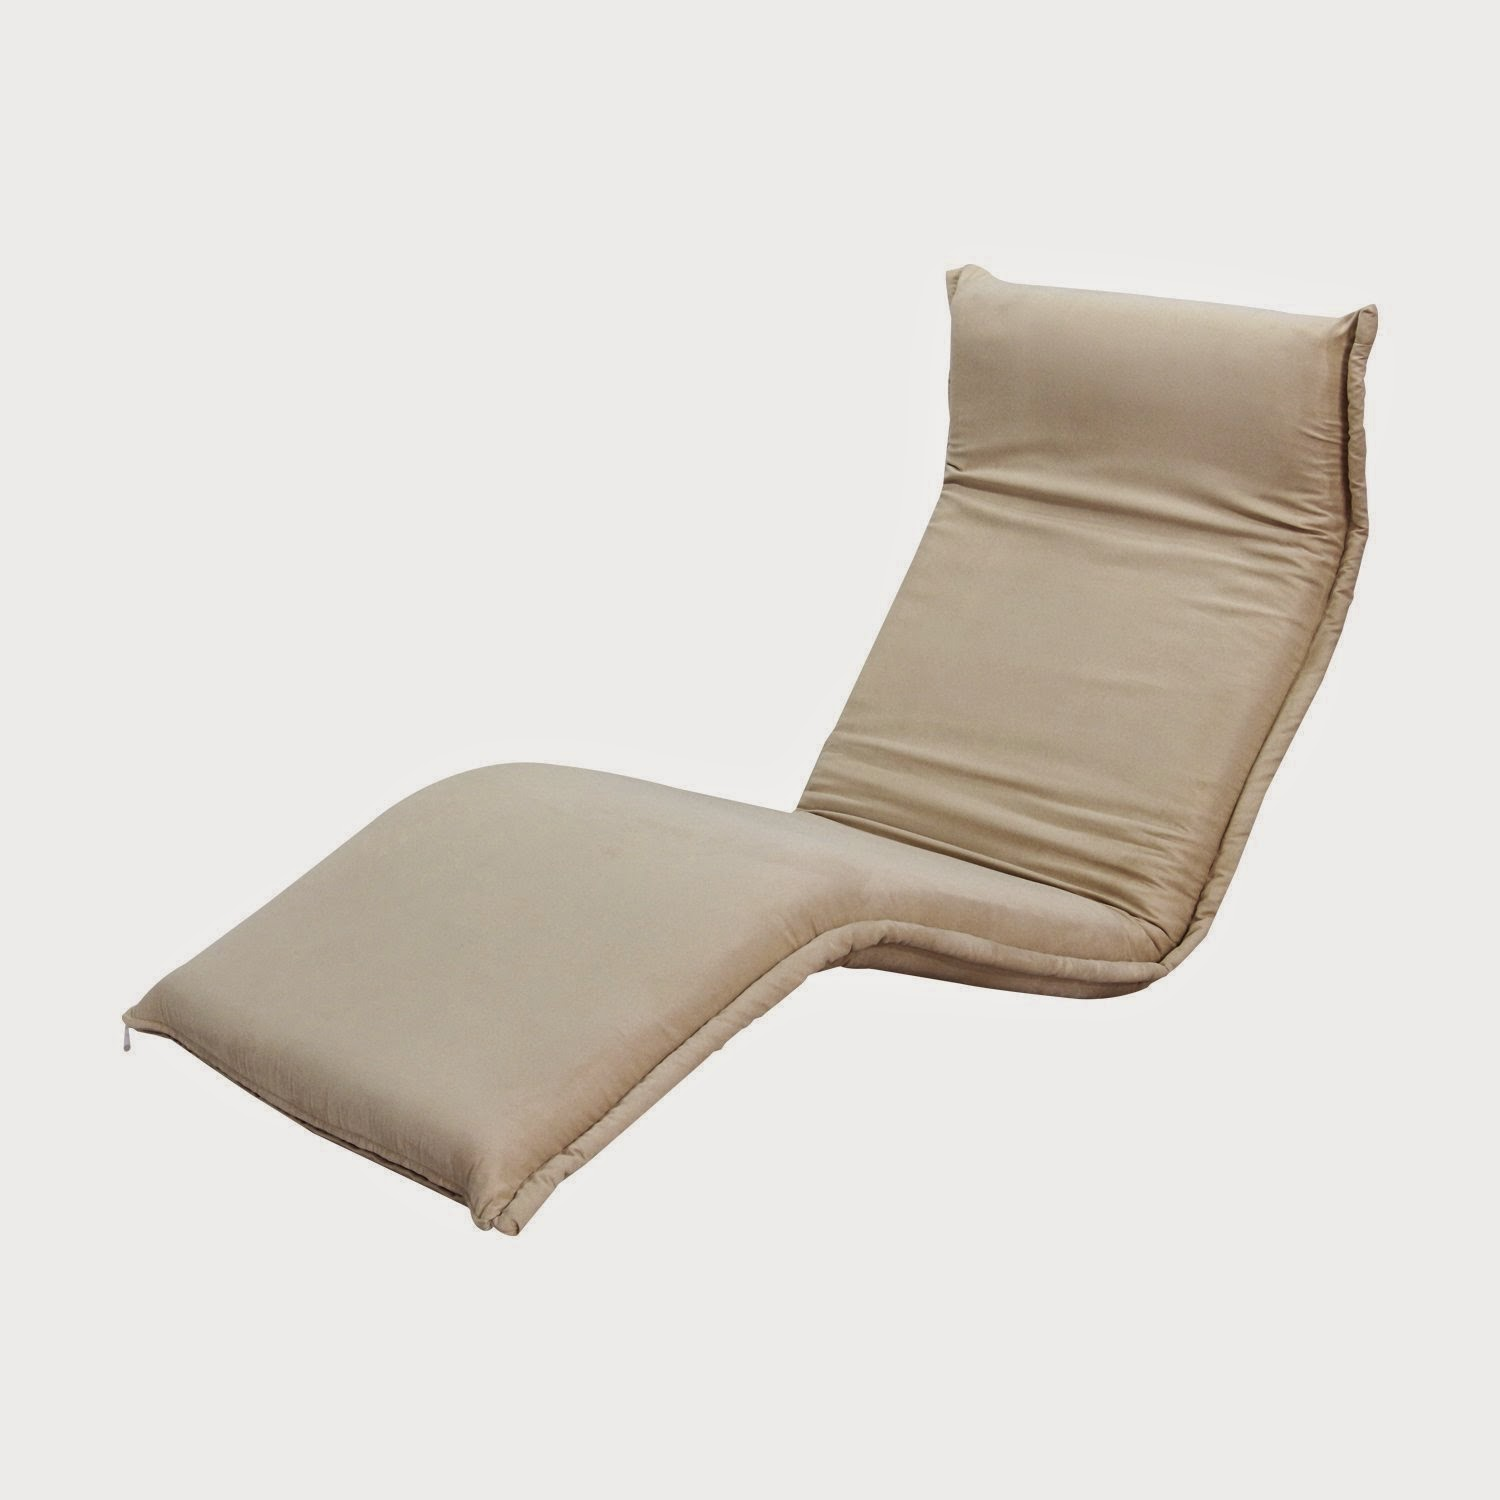 "Sale f 50% Hom 75"" Adjustable Folding Floor Sofa Chair Cream Ou"